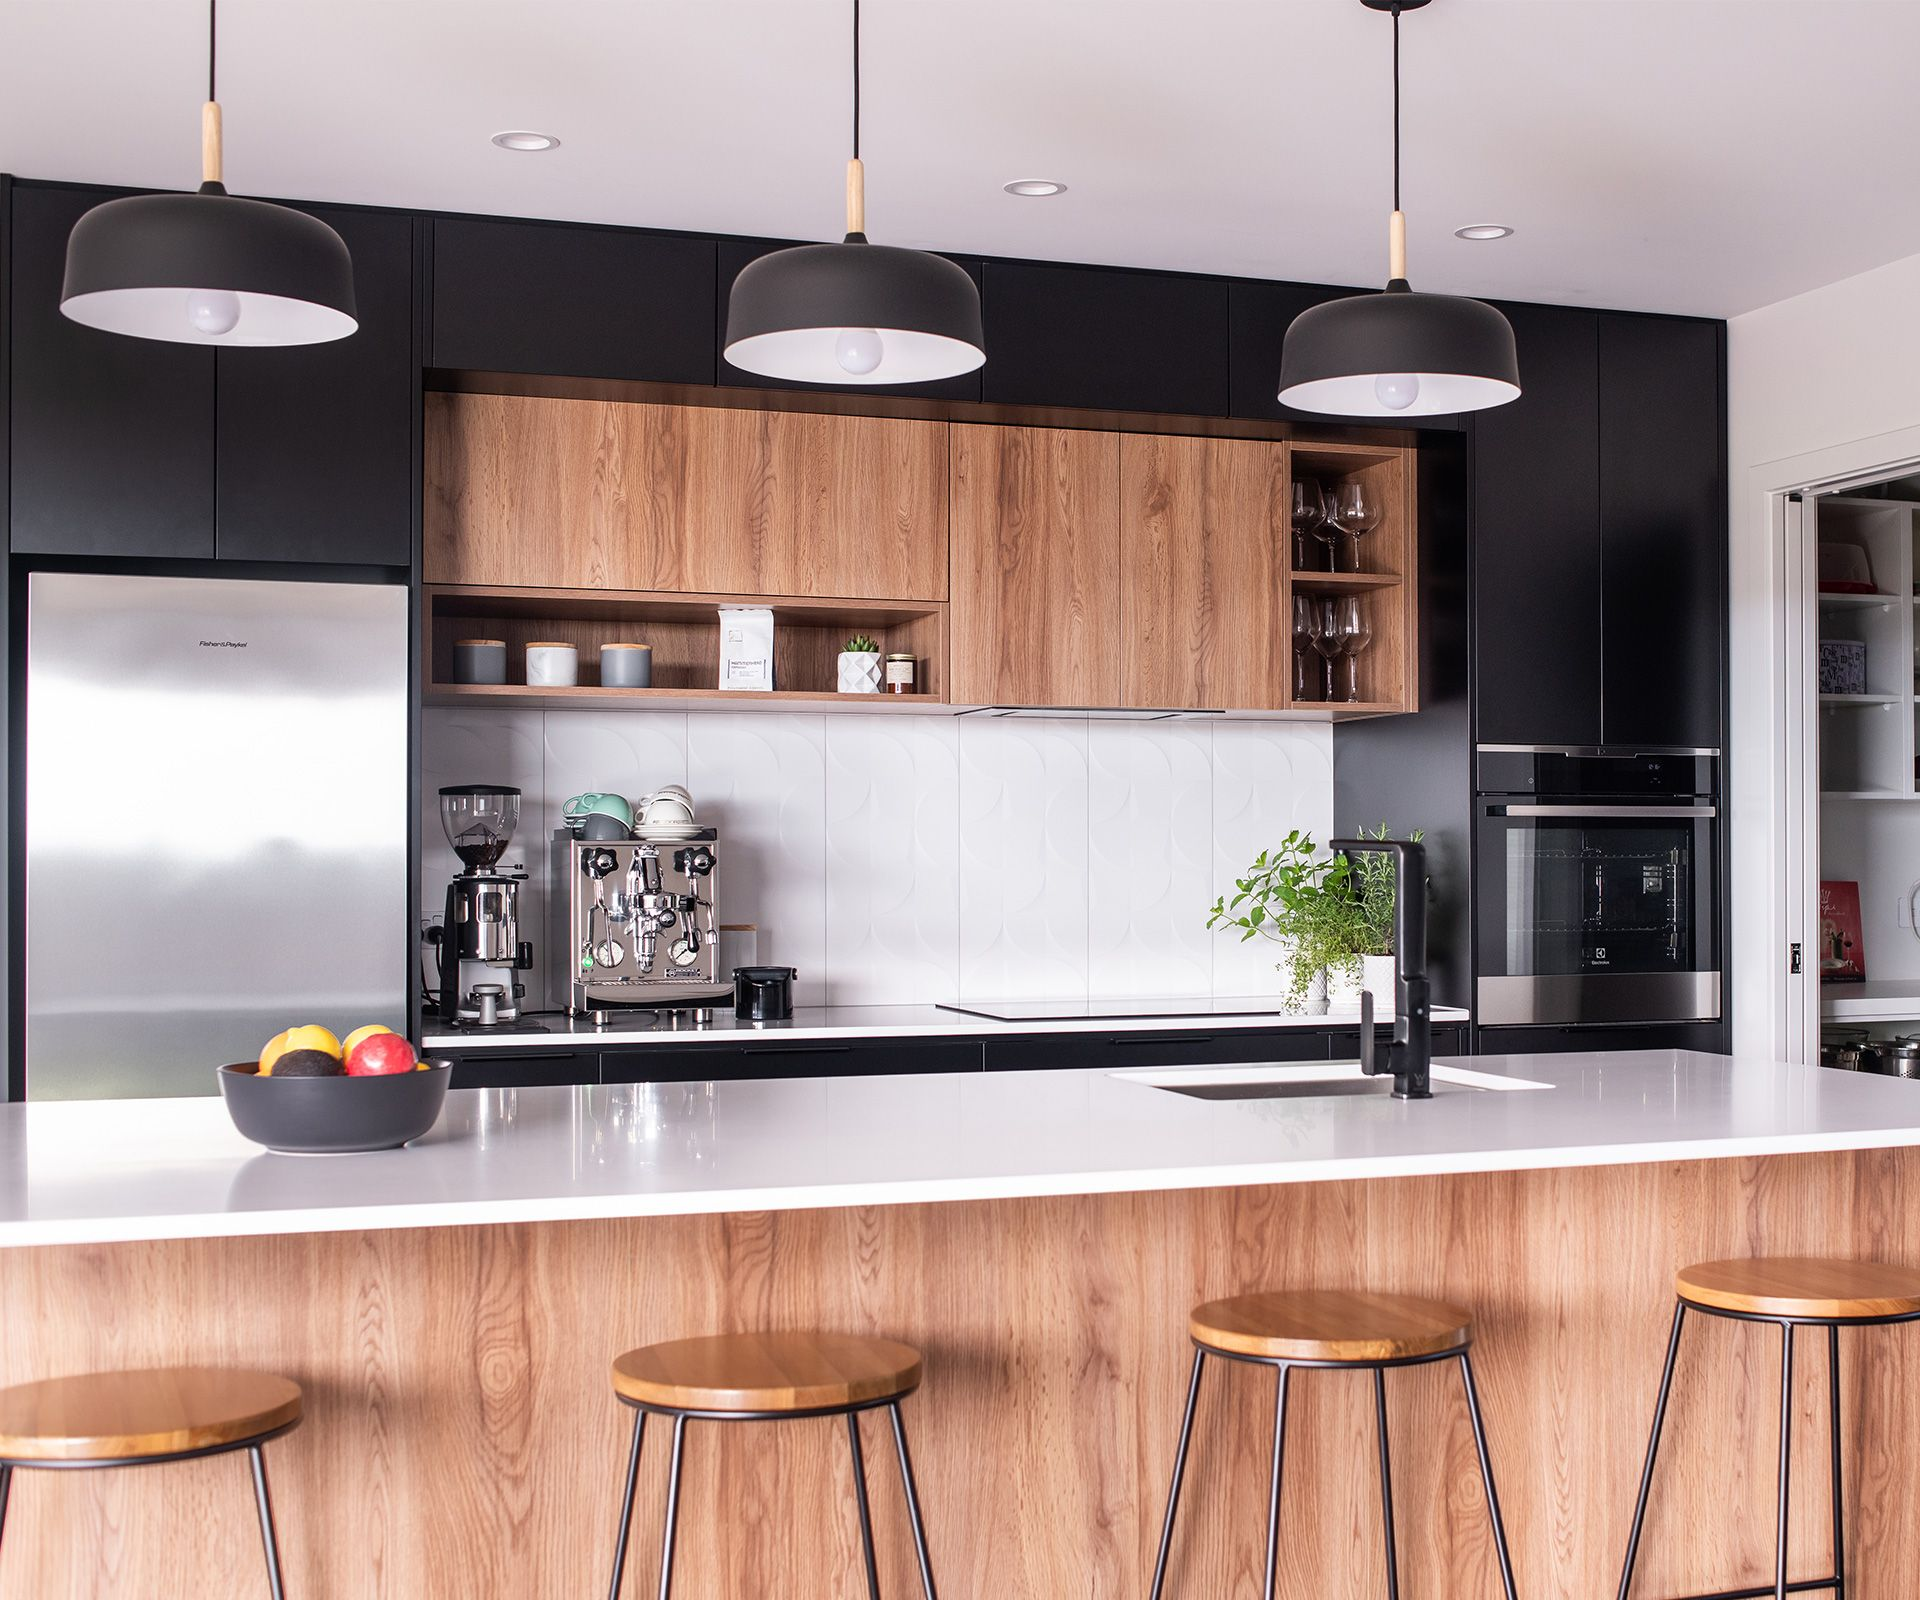 This Black And White Kitchen Was Designed For Entertaining In Style Timber Design Modern